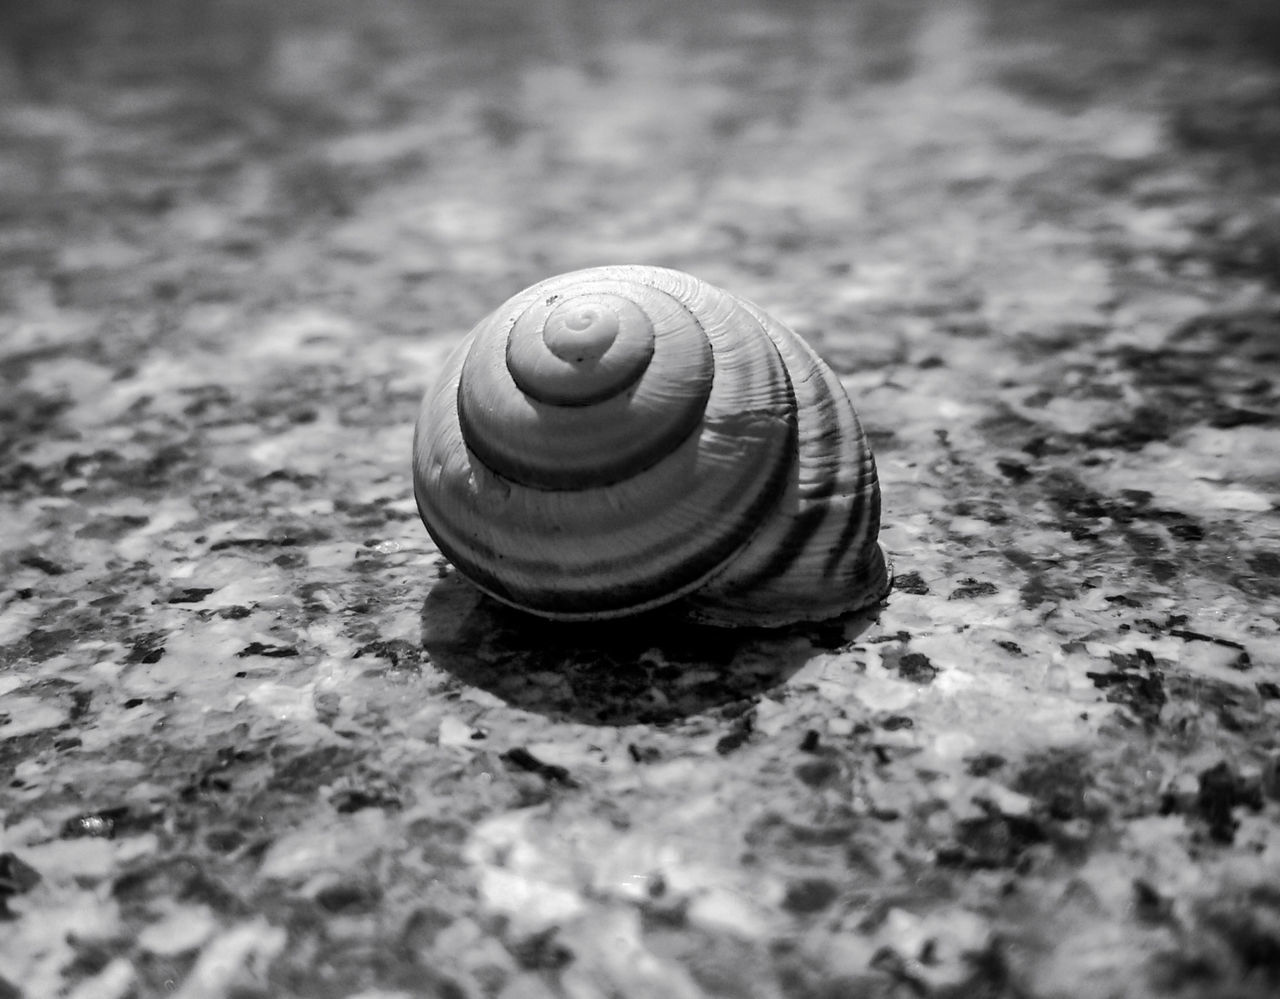 snail, animal themes, one animal, gastropod, animals in the wild, nature, wildlife, close-up, no people, selective focus, day, outdoors, fragility